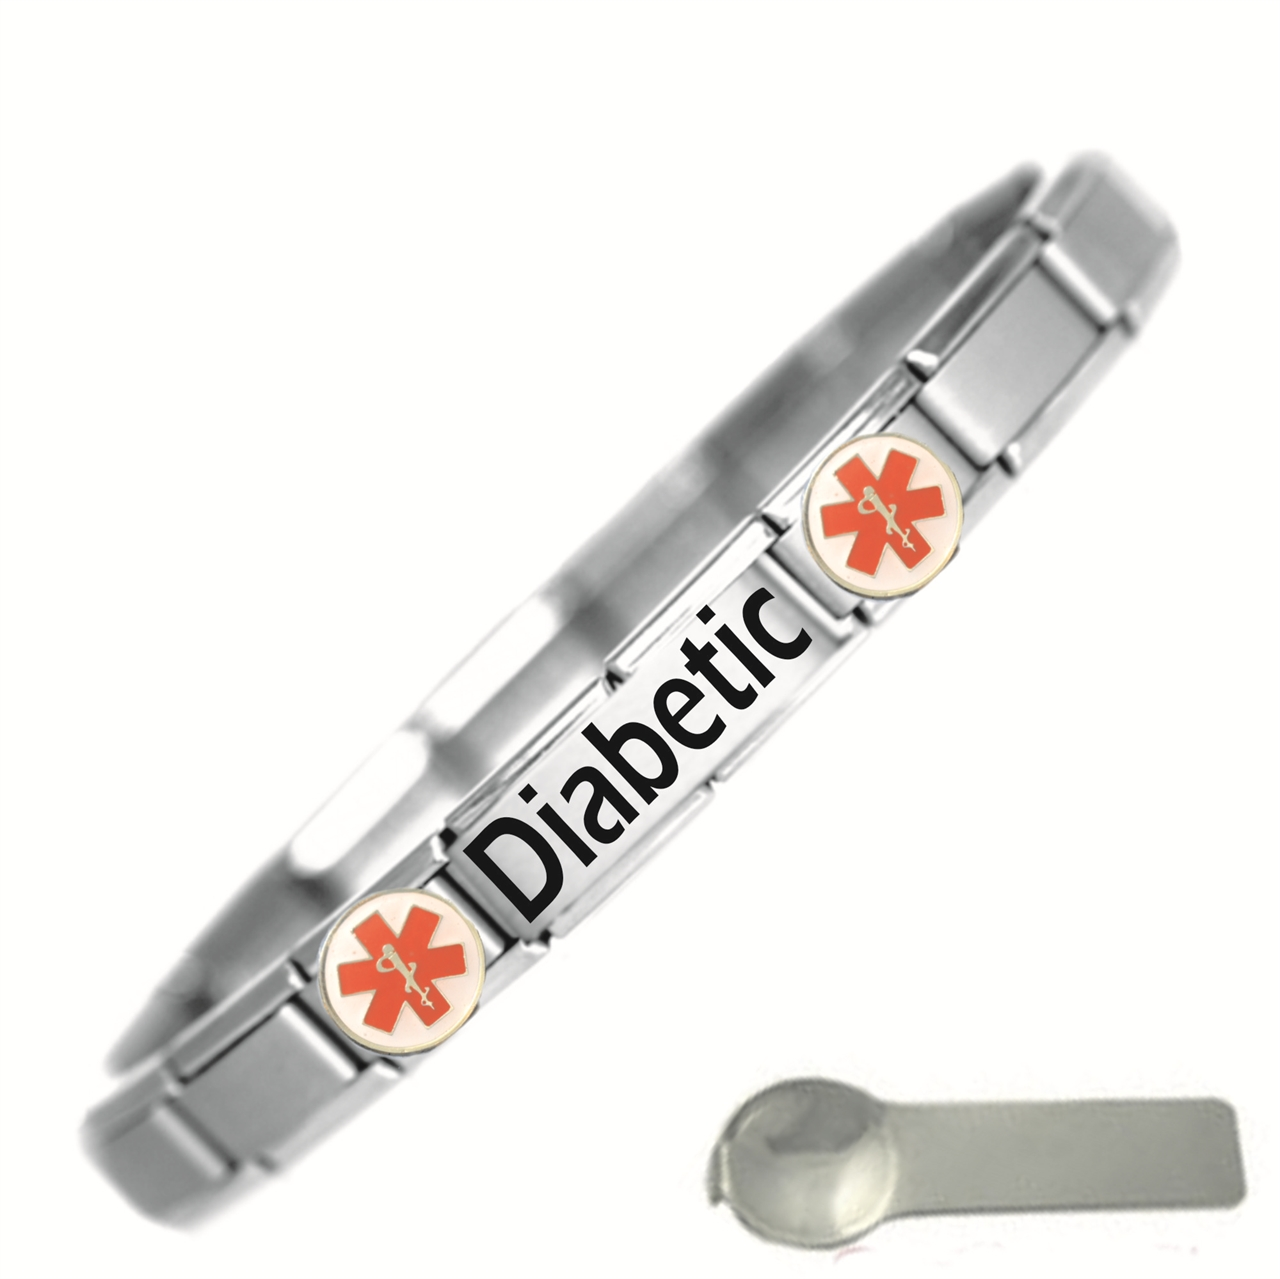 dp customizable free bracelet amazon seizure steel stainless medical seizures includes engraving jewelry com alert